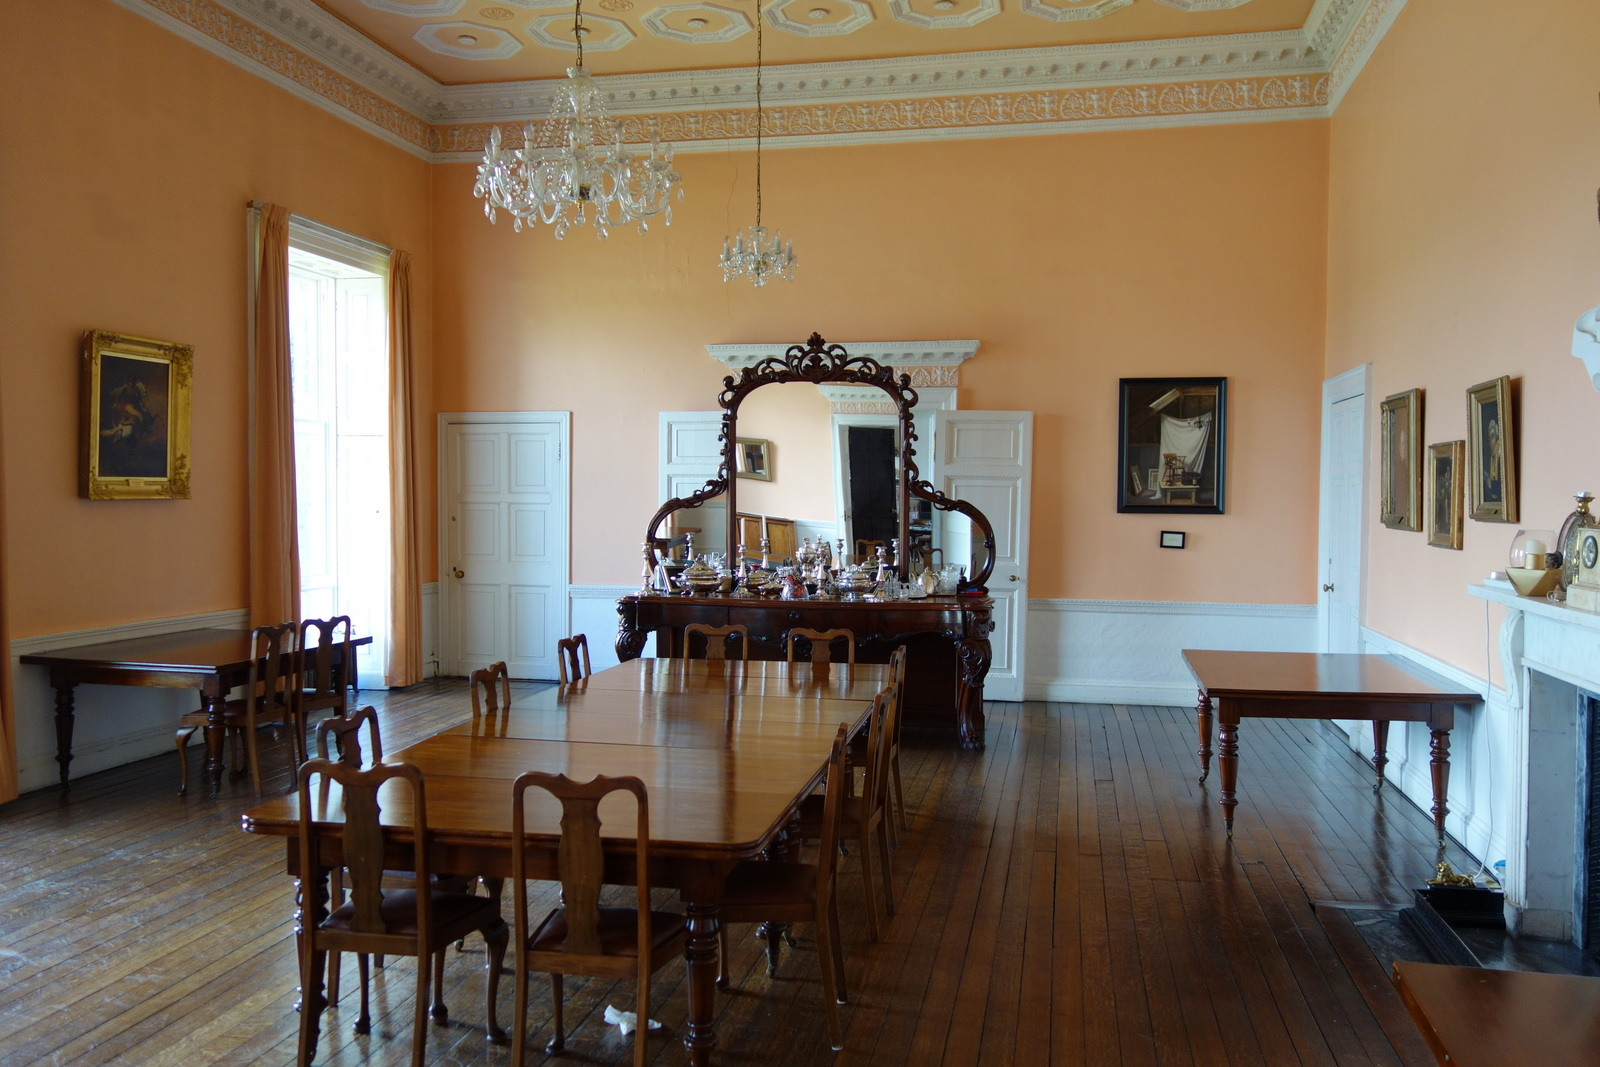 File:Staff Dining Room - Clongowes Wood College - Kildare ...